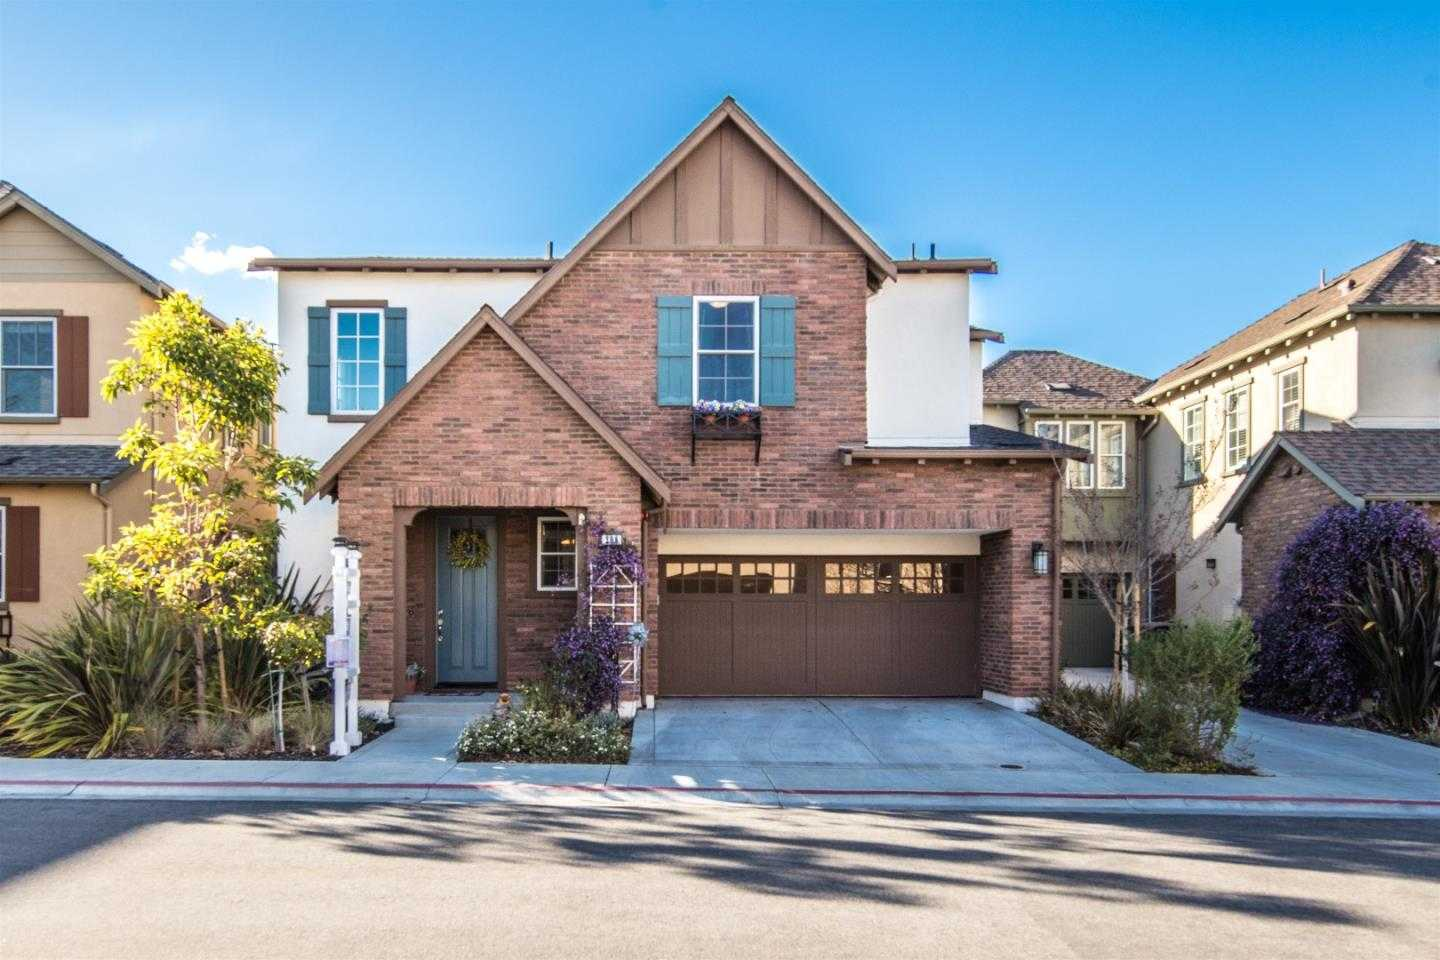 $2,088,000 - 4Br/3Ba -  for Sale in Mountain View